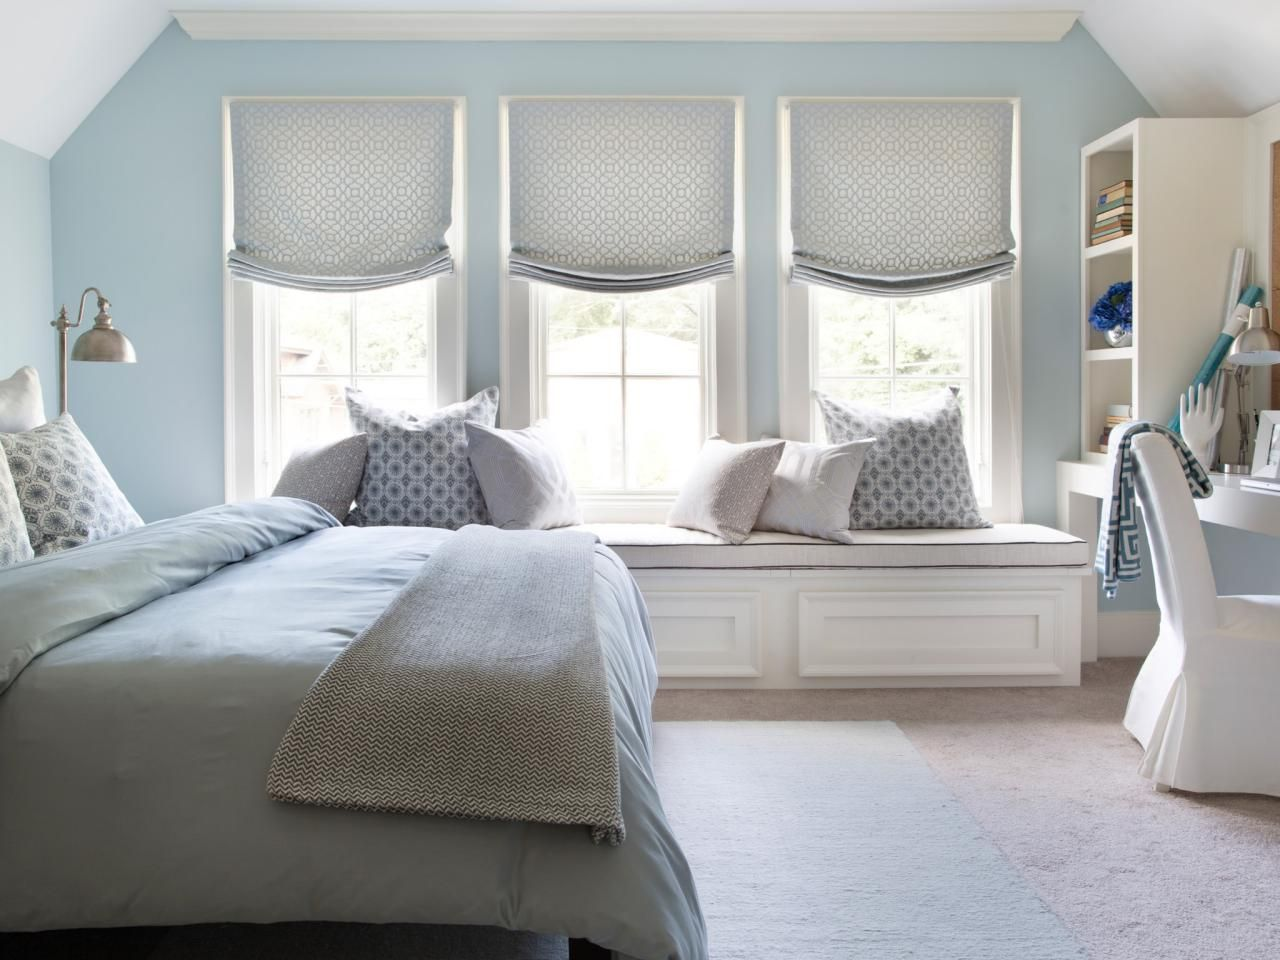 Window behind bed ideas  welcoming guest bedroom ideas for winter visitors  home remodeling